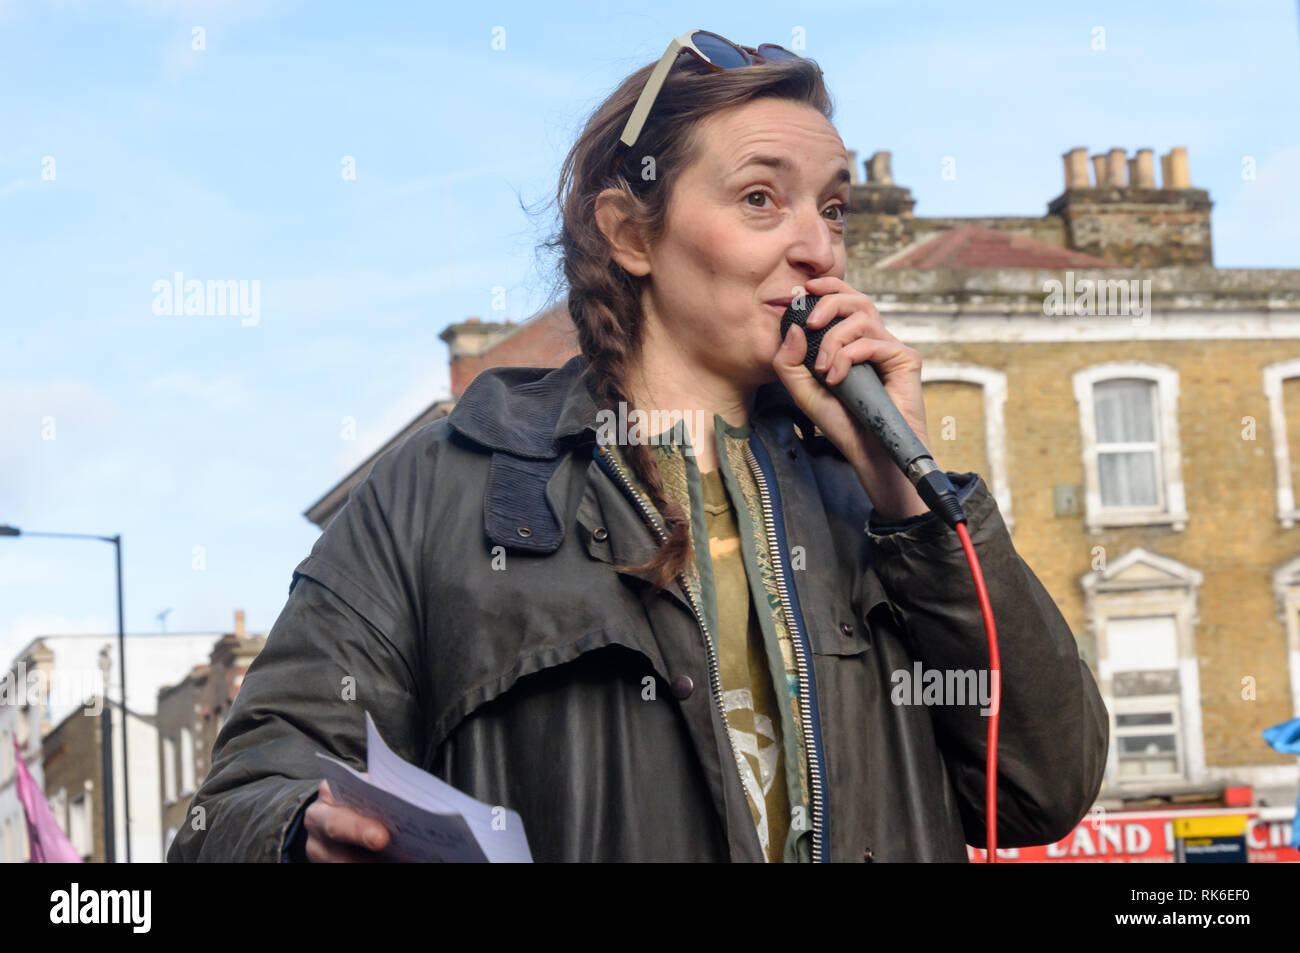 London, UK. 9th February 2019. A Hackney environmentalist speask at the Extinction Rebellionstreet party blocking the A10 Kingsland High St in Dalston for two housrs with speeches, music and spoken word performances, t-shirt printing, face painting and free food, with dancing to a samba band which led them for a brief march up the road before returning to continue the protest in Gillett Square.  XR is in open Rebellion against the UK Government for its criminal inaction in the face of impending climate and ecological collapse.  Peter Marshall/Alamy Live News - Stock Image